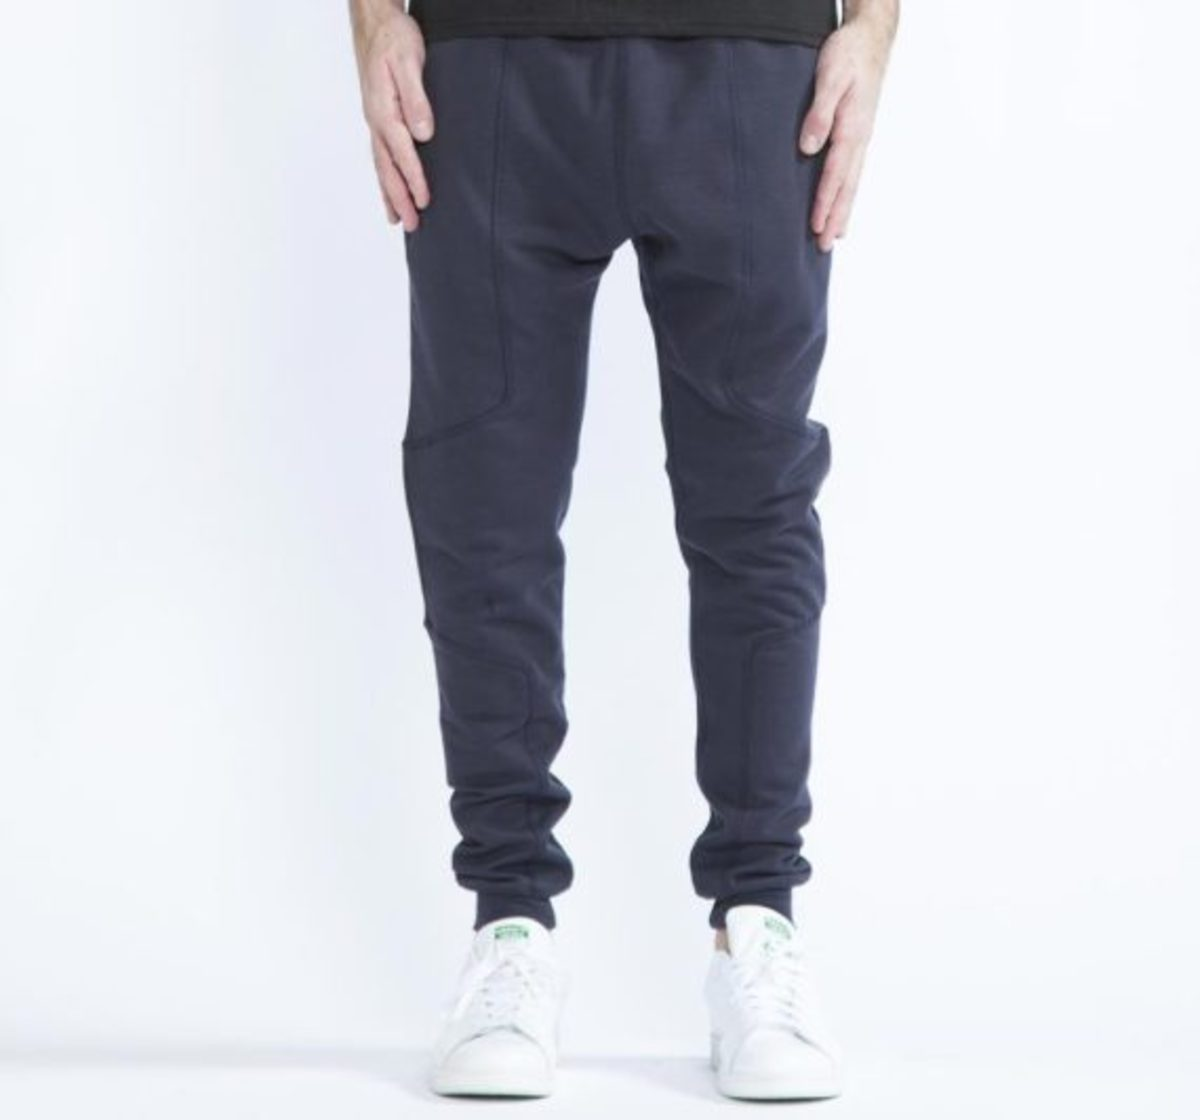 12-days-freshness-publish-brand-joggers-fleece-collection-05